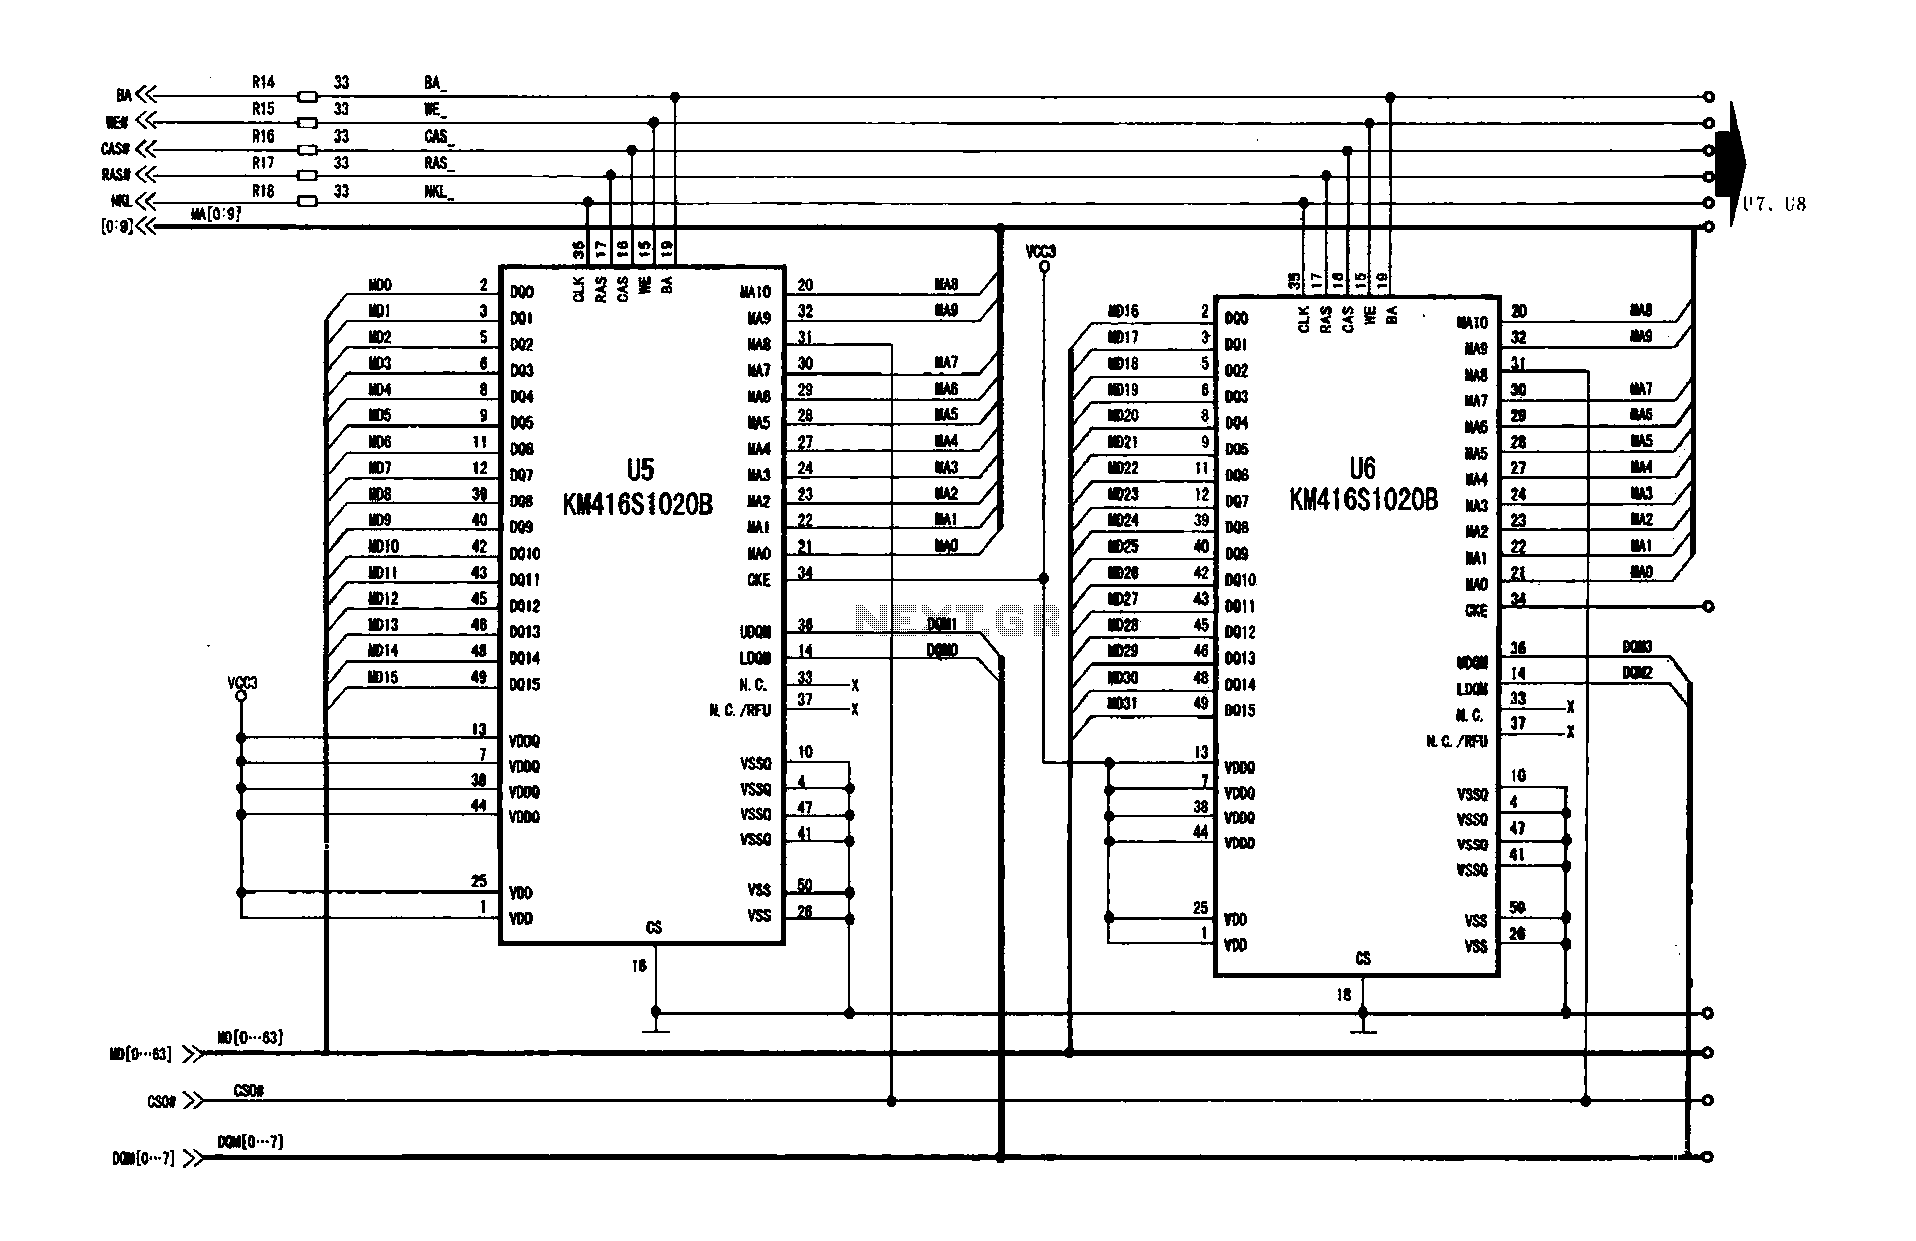 Memory Schematic Auto Electrical Wiring Diagram Radio Frequency Circuit Nextgr Computer Circuits Next Gr